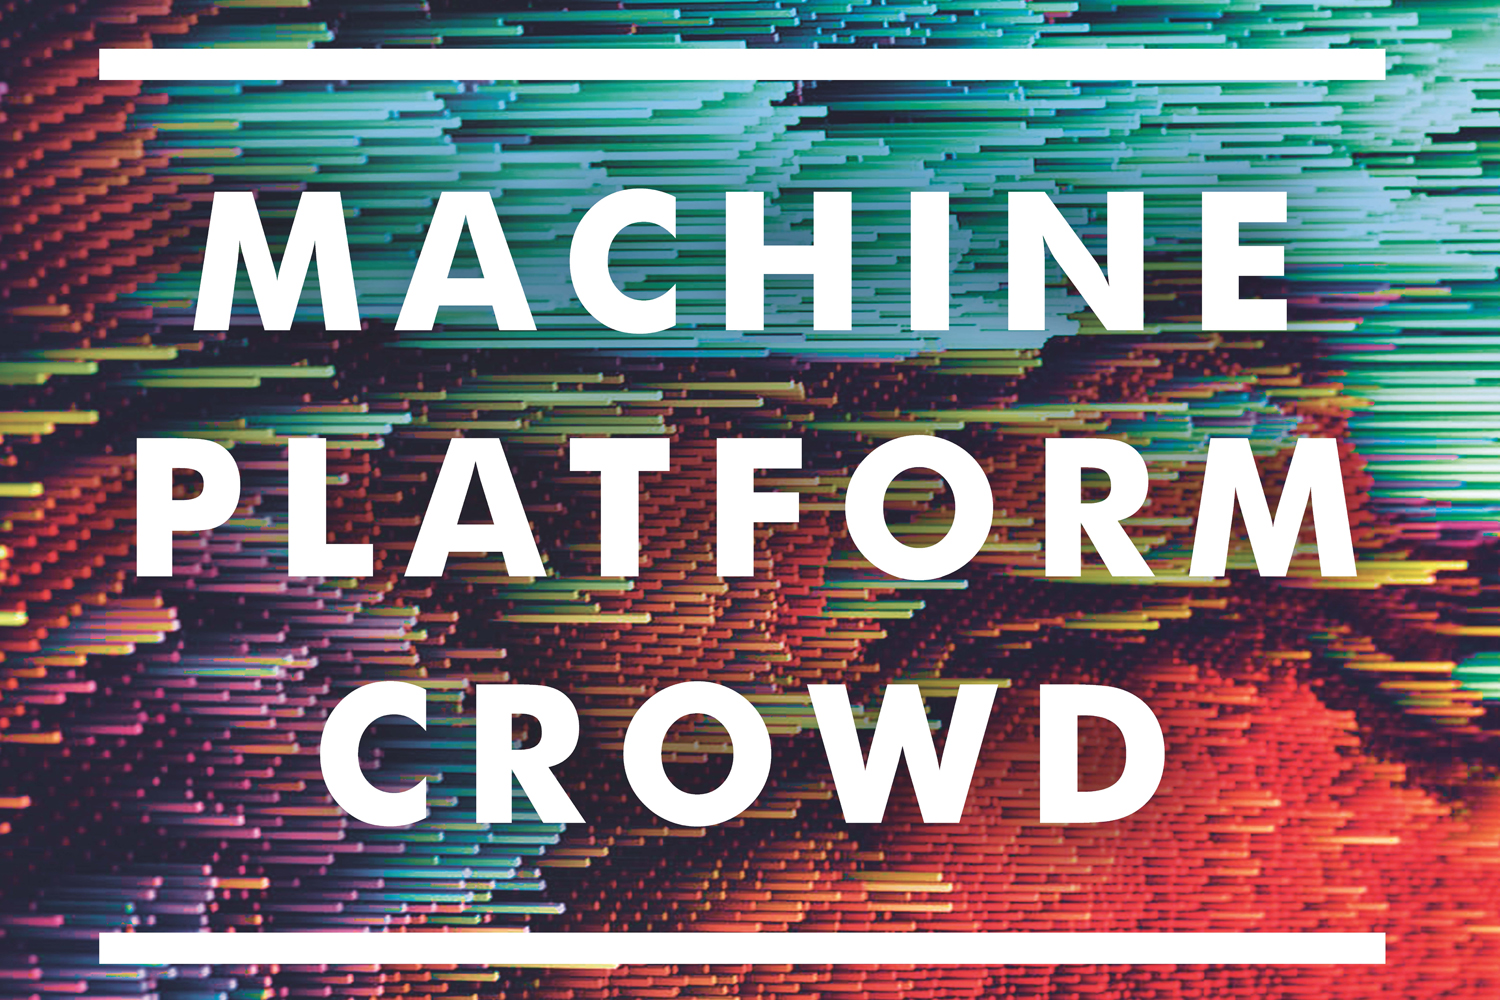 Machine, Platform, Crowd: Harnessing our Digital Future. (Courtesy/W. W. Norton & Company, Inc.)